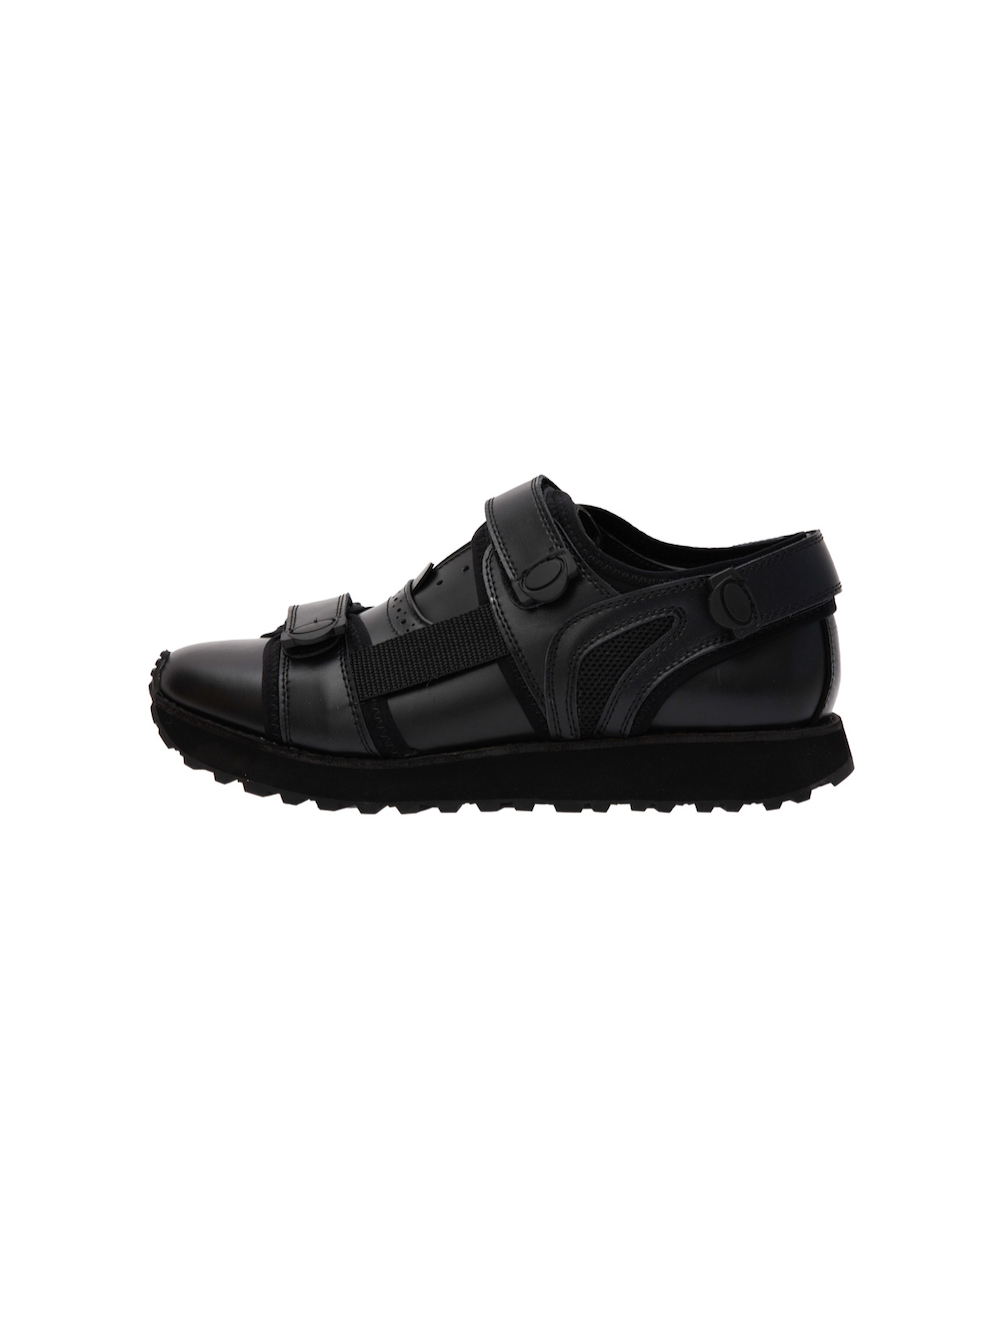 画像2: OFFICER TRAINER 2 (BLACK PREMO) Men's / Women's [36,000+TAX]